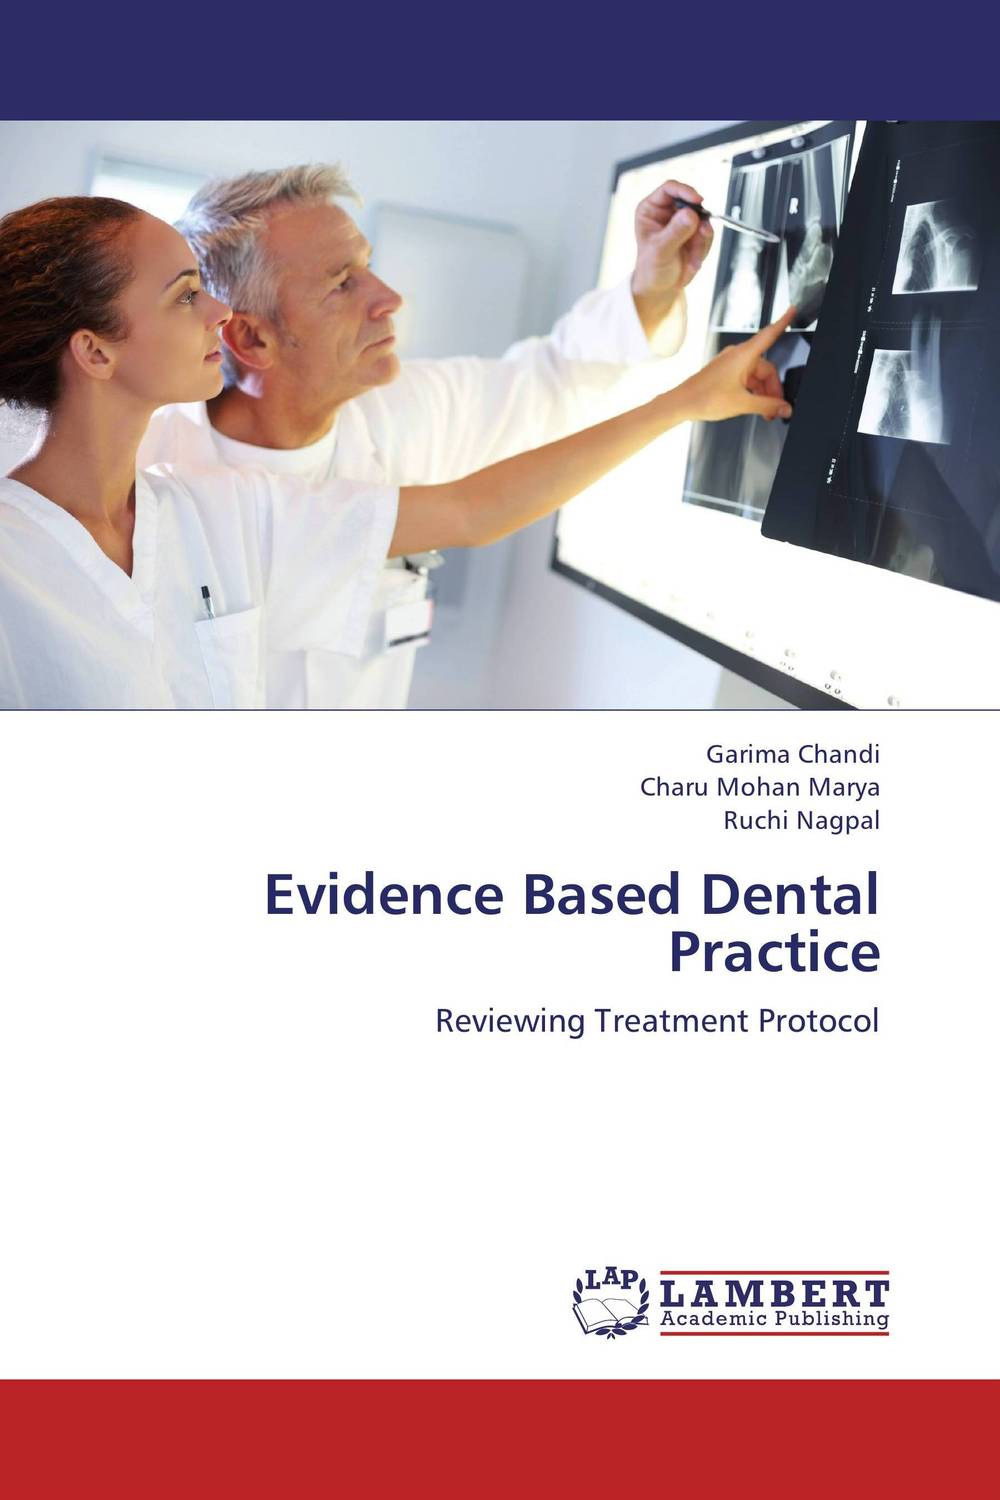 Evidence Based Dental Practice from evidence to action